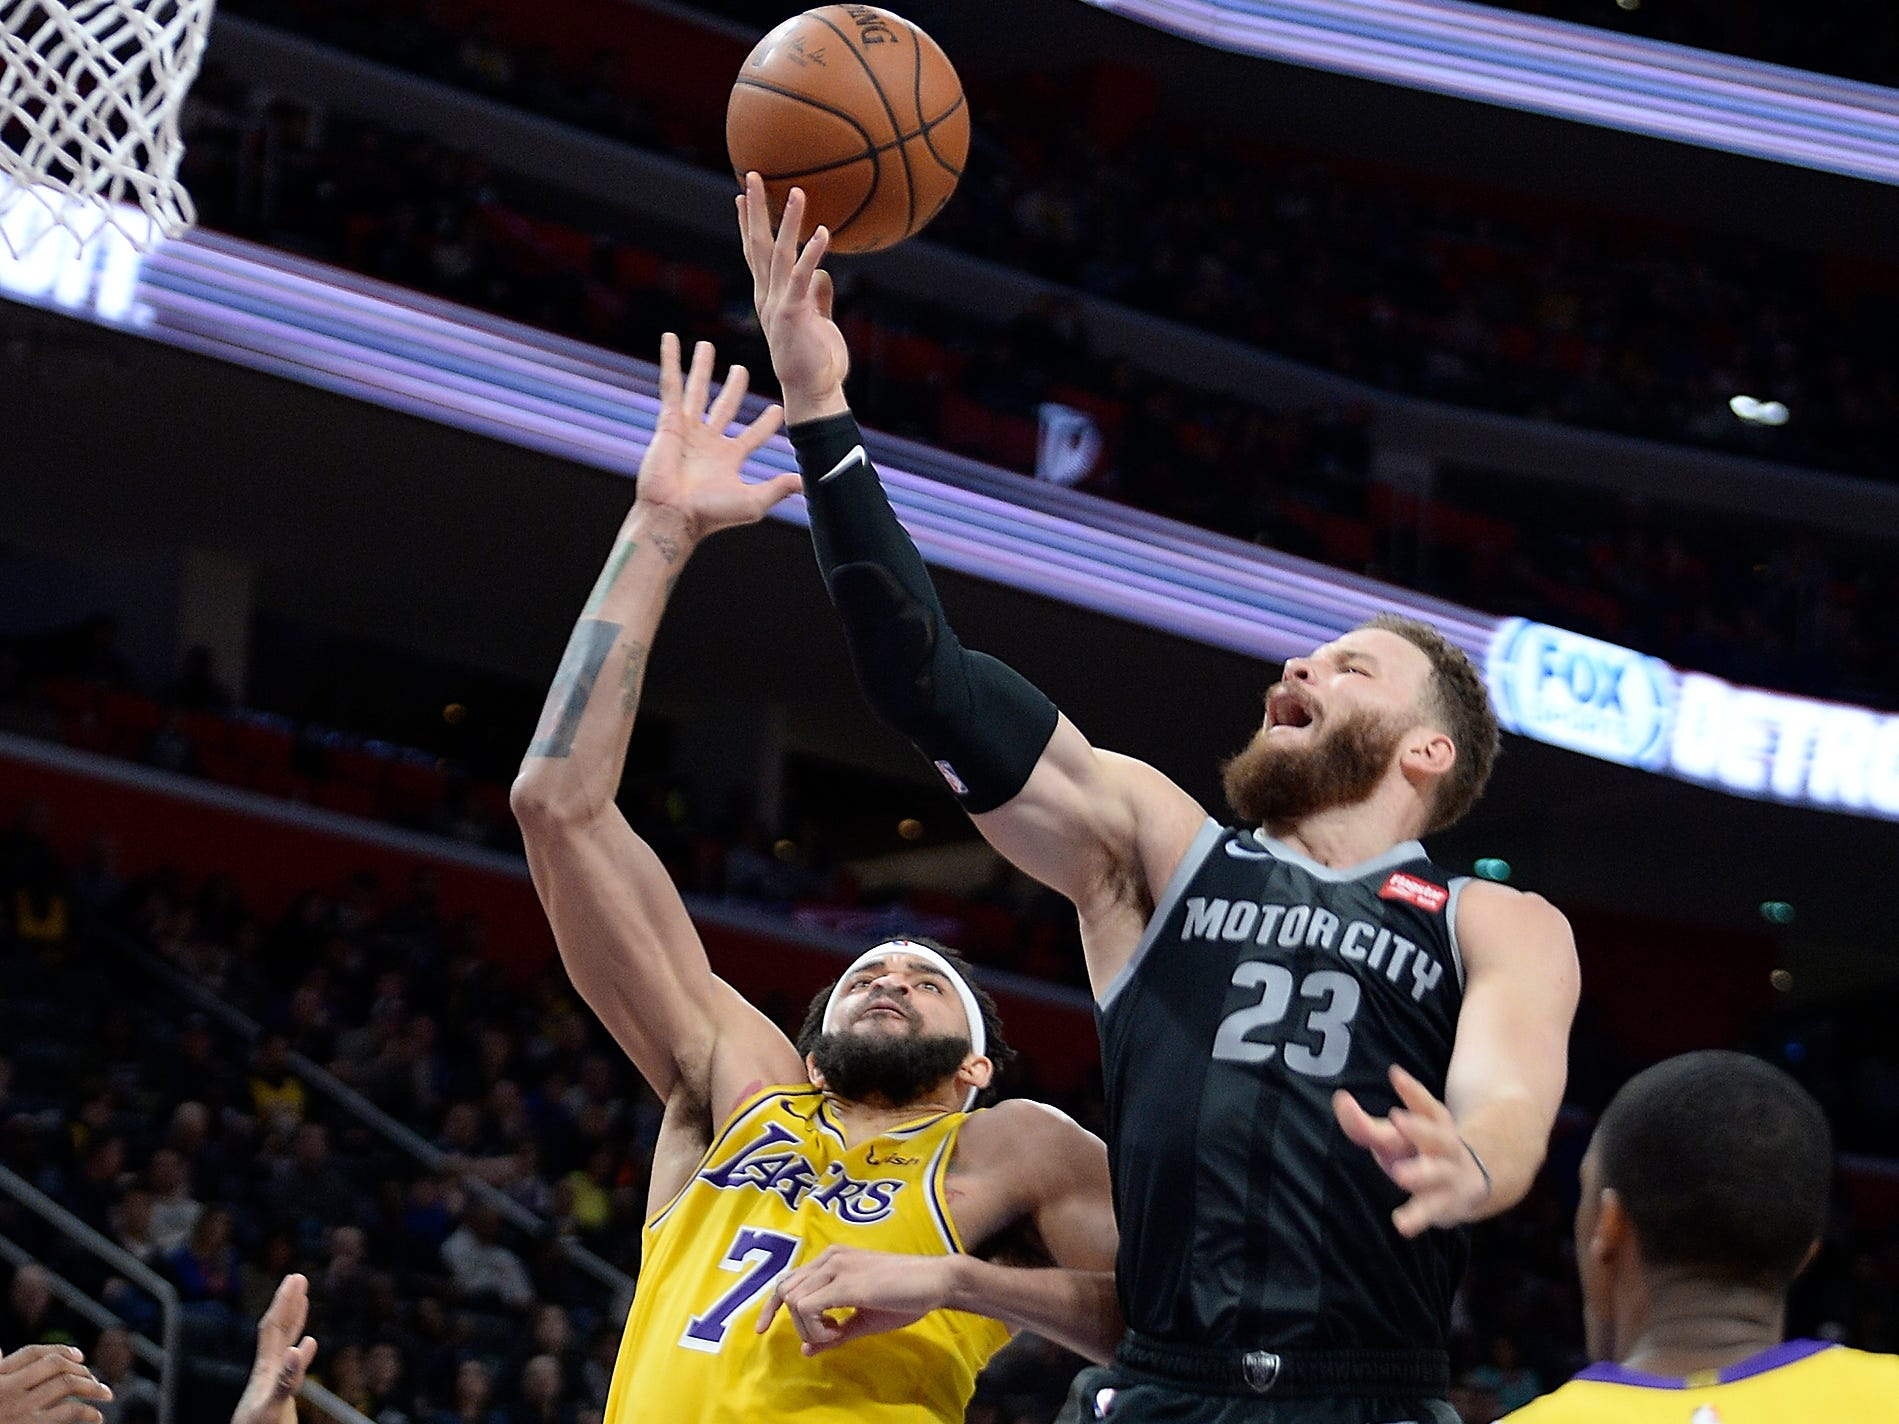 Pistons' Blake Griffin has his shot blocked by Lakers' JaVale McGee in the second quarter.